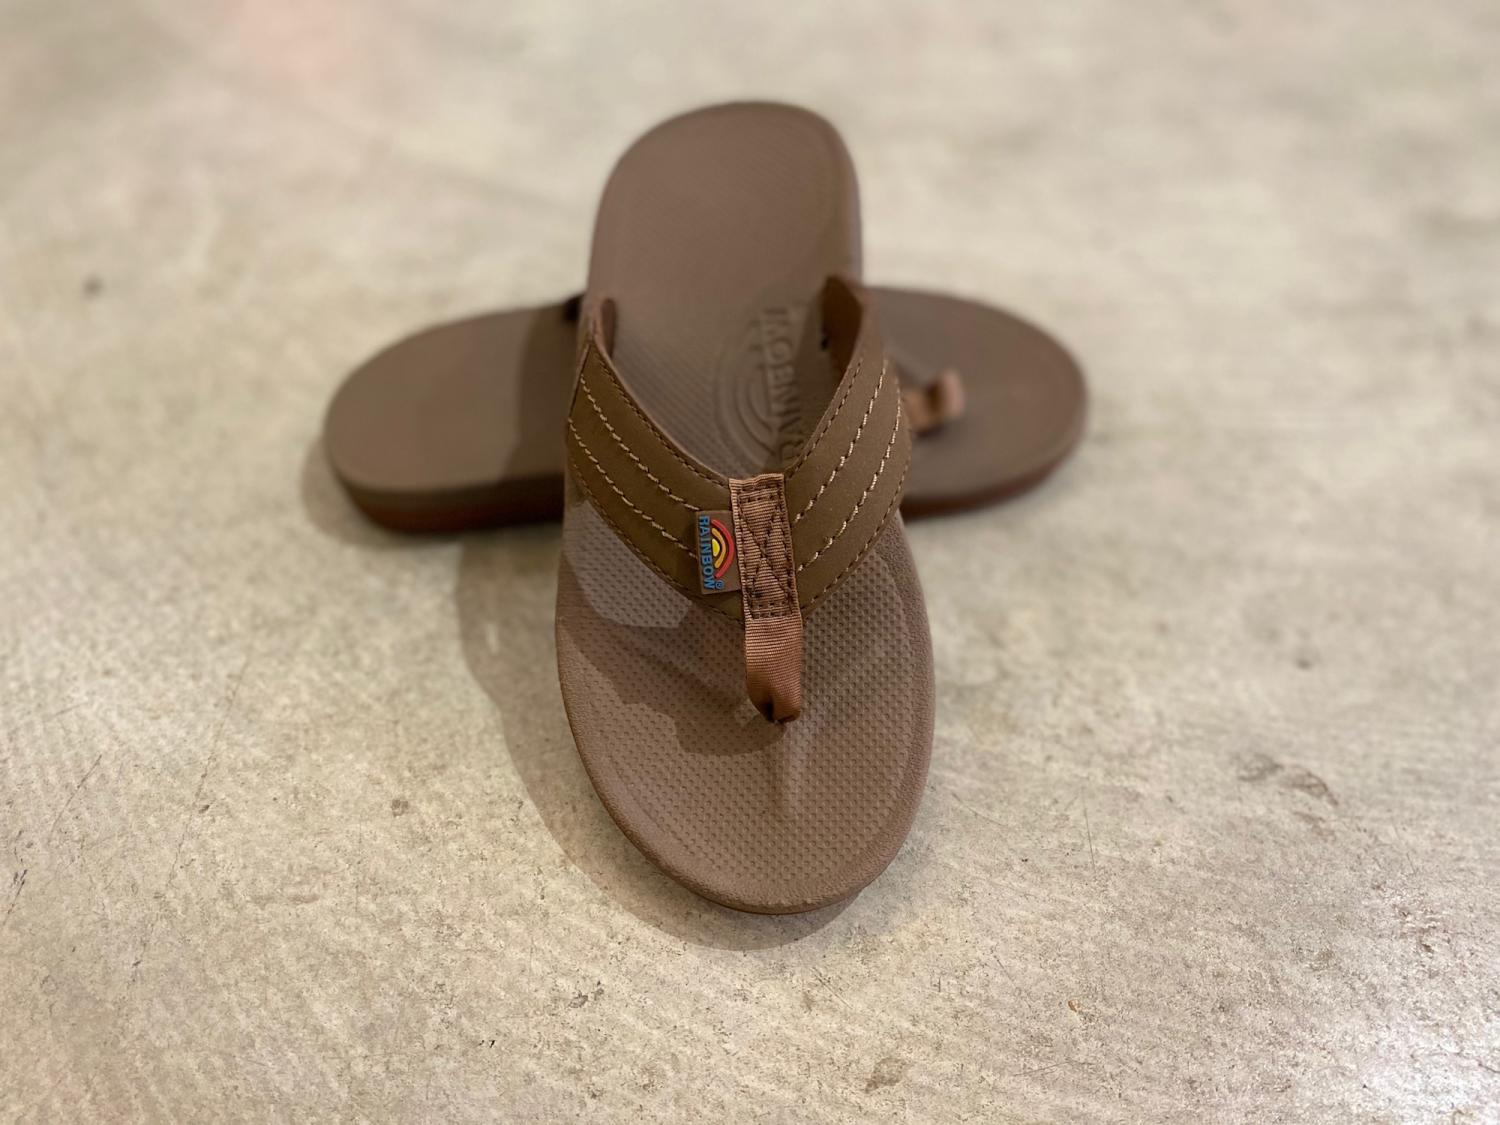 RAINBOW SANDALS KID'S CAPES Sierra Brown Molded Rubber Sandal with a Suede Strap